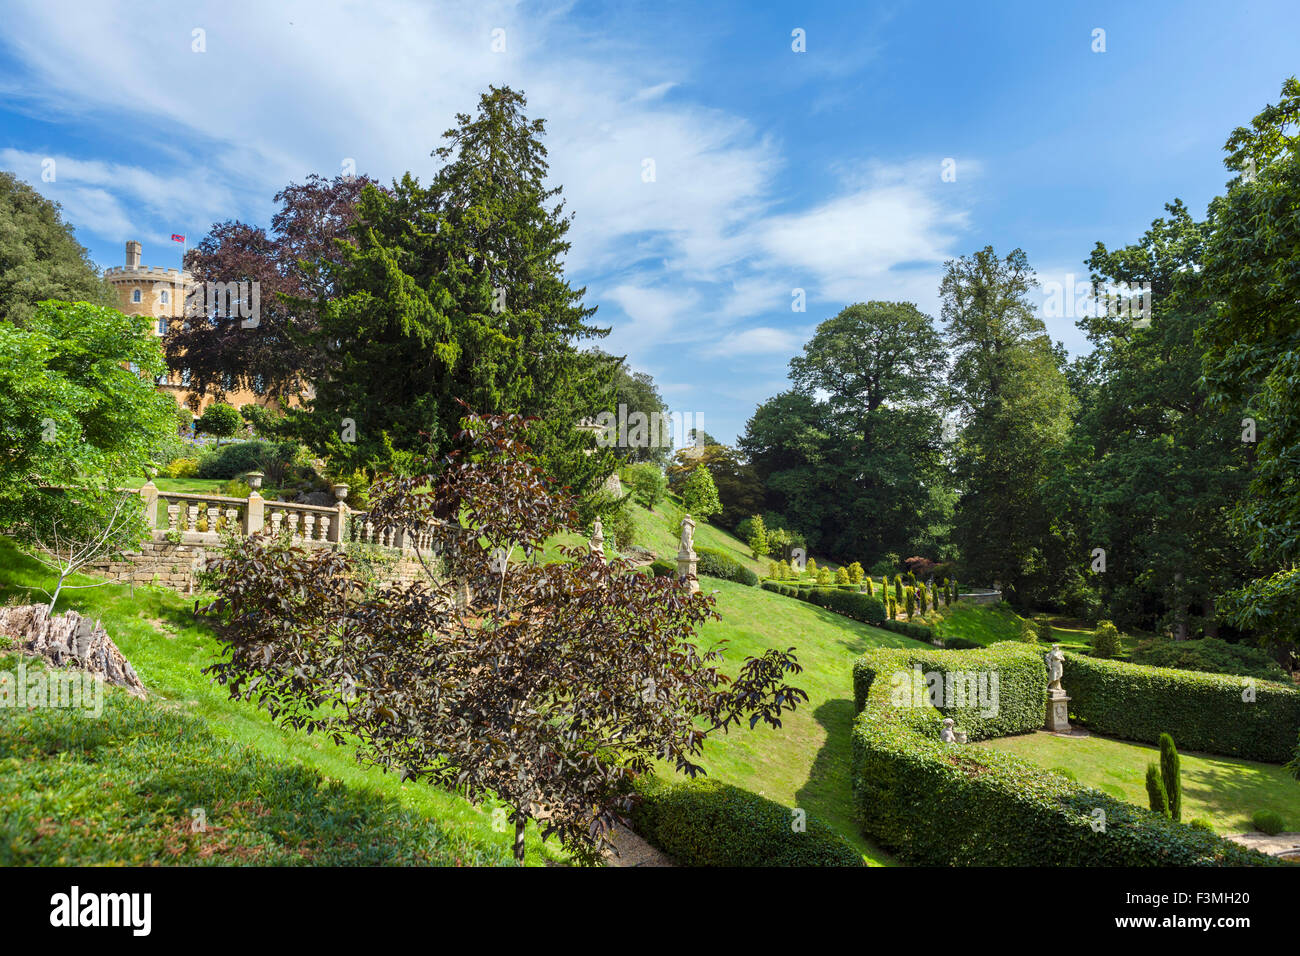 The gardens at Belvoir Castle, a stately home in Leicestershire, England, UK Stock Photo